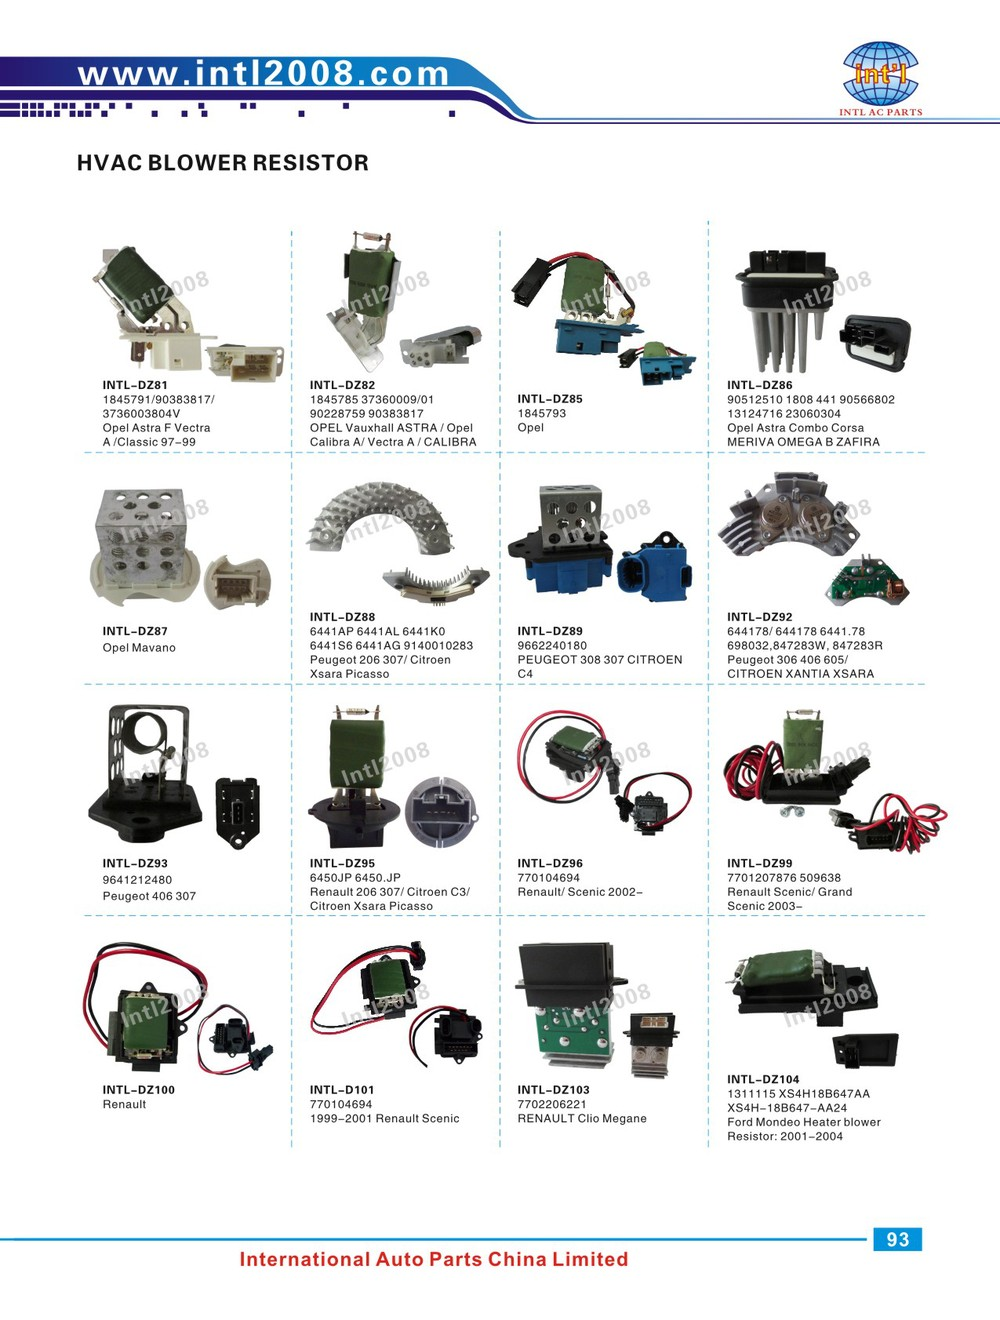 Grand Am Blower Motor Resistor Location additionally Chevy Suburban Blower Motor Resistor Location together with Cadillac Cts Fuse Box Location And Designation together with Saturn L300 Blower Motor Location as well Watch. on blower motor resistor control module